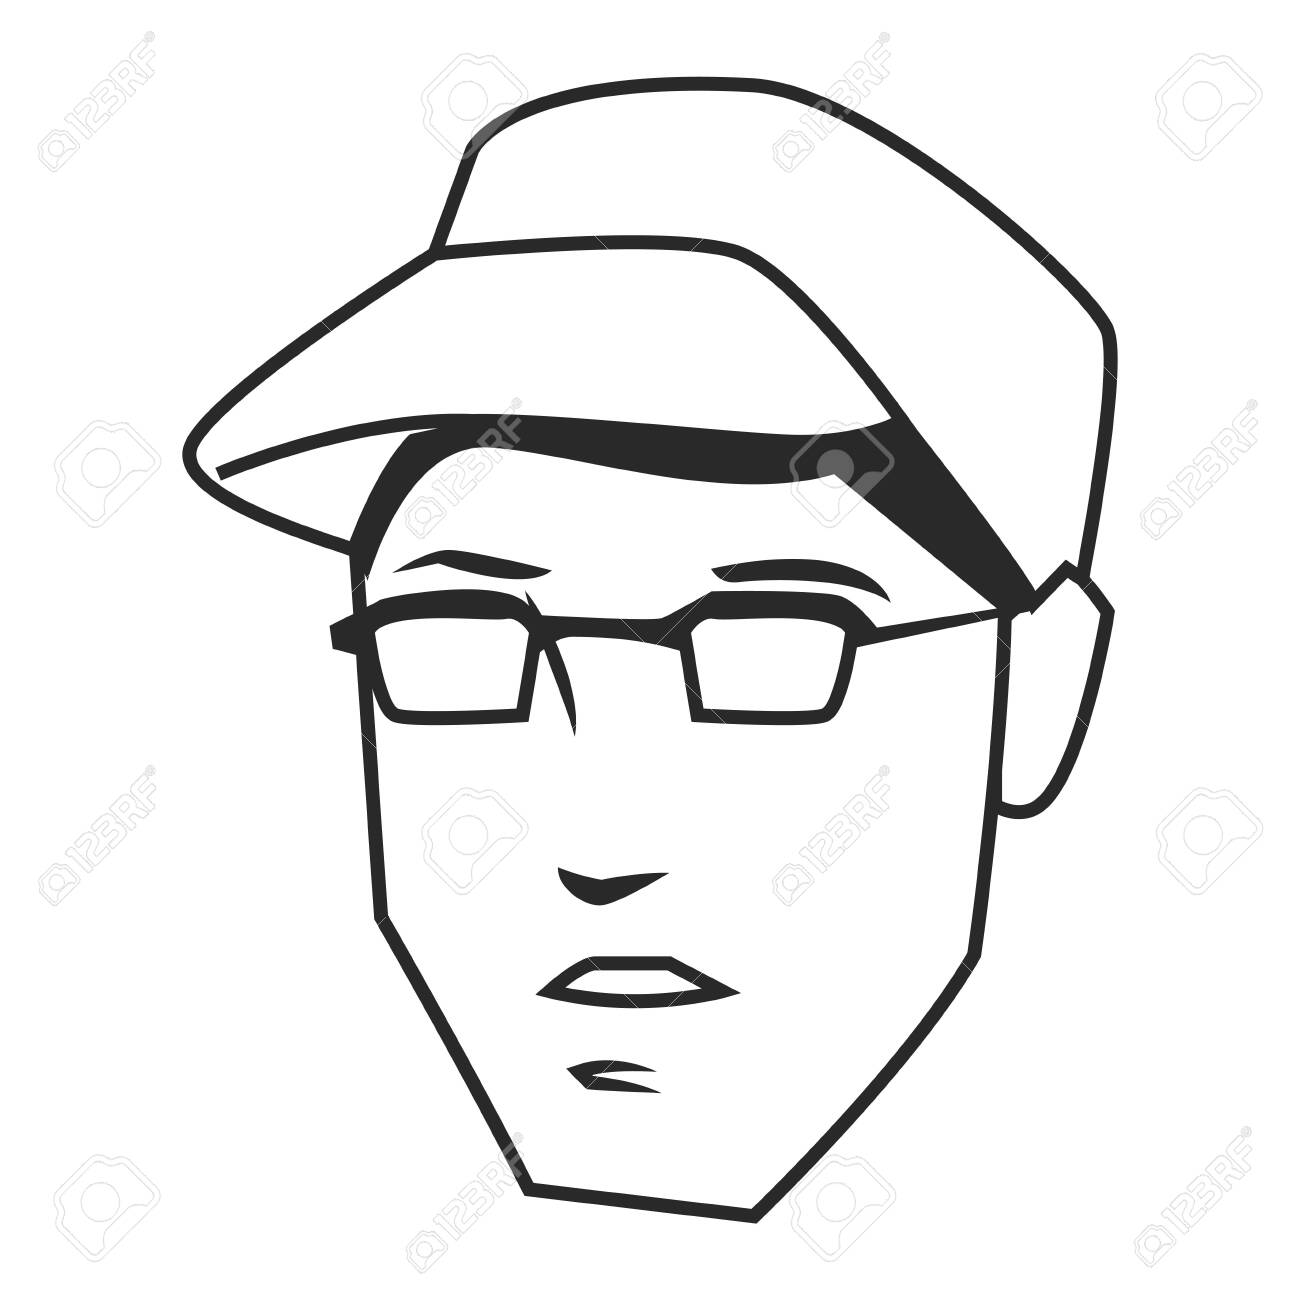 Man Face Avatar Wearing Glasses And Hat In Black And White Cartoon